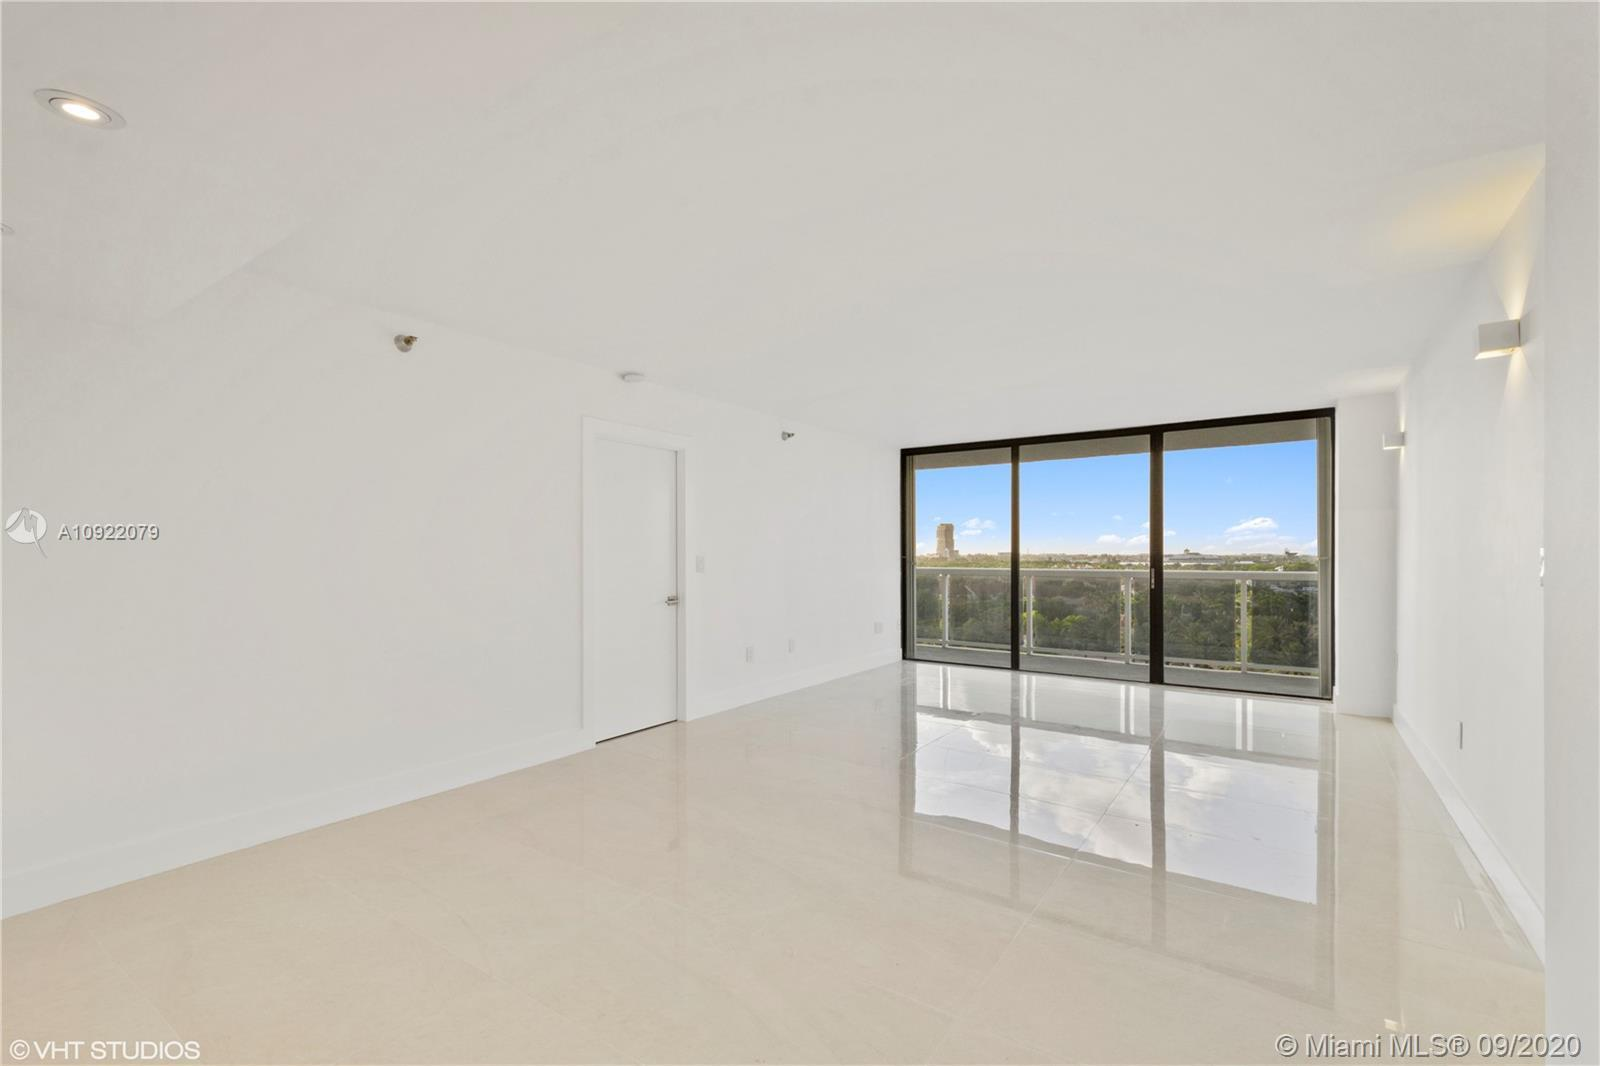 BEAUTIFUL unit has been COMPLETELY RENOVATED. Luxurious 2 bed, 2 bath residence with spectacular 180